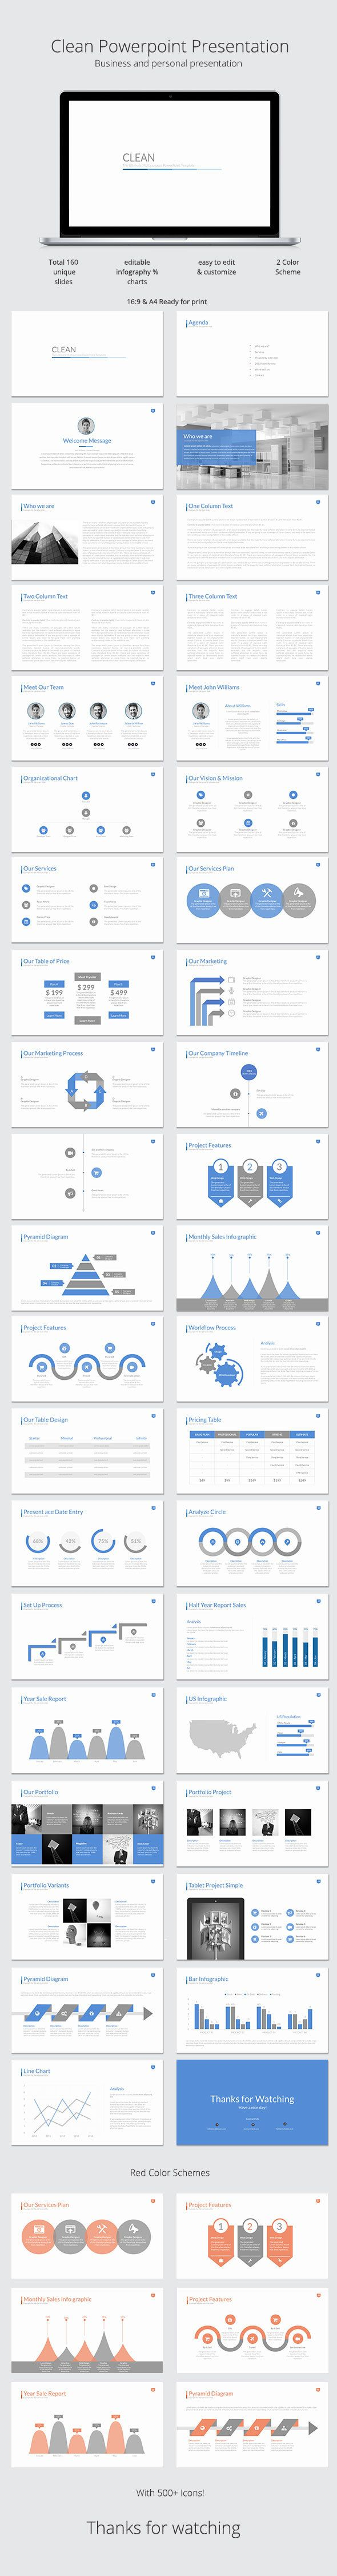 Usdgus  Personable  Ideas About Presentation On Pinterest  Presentation  With Great Clean Powerpoint Presentation Template Design Slides Download Httpgraphicriver With Extraordinary Download Free Microsoft Powerpoint Templates Also Bcg Powerpoint In Addition Download Template Powerpoint Gratis And Microsoft Powerpoint  Pdf As Well As Sample For Powerpoint Presentation Additionally Play Powerpoint On Dvd From Pinterestcom With Usdgus  Great  Ideas About Presentation On Pinterest  Presentation  With Extraordinary Clean Powerpoint Presentation Template Design Slides Download Httpgraphicriver And Personable Download Free Microsoft Powerpoint Templates Also Bcg Powerpoint In Addition Download Template Powerpoint Gratis From Pinterestcom